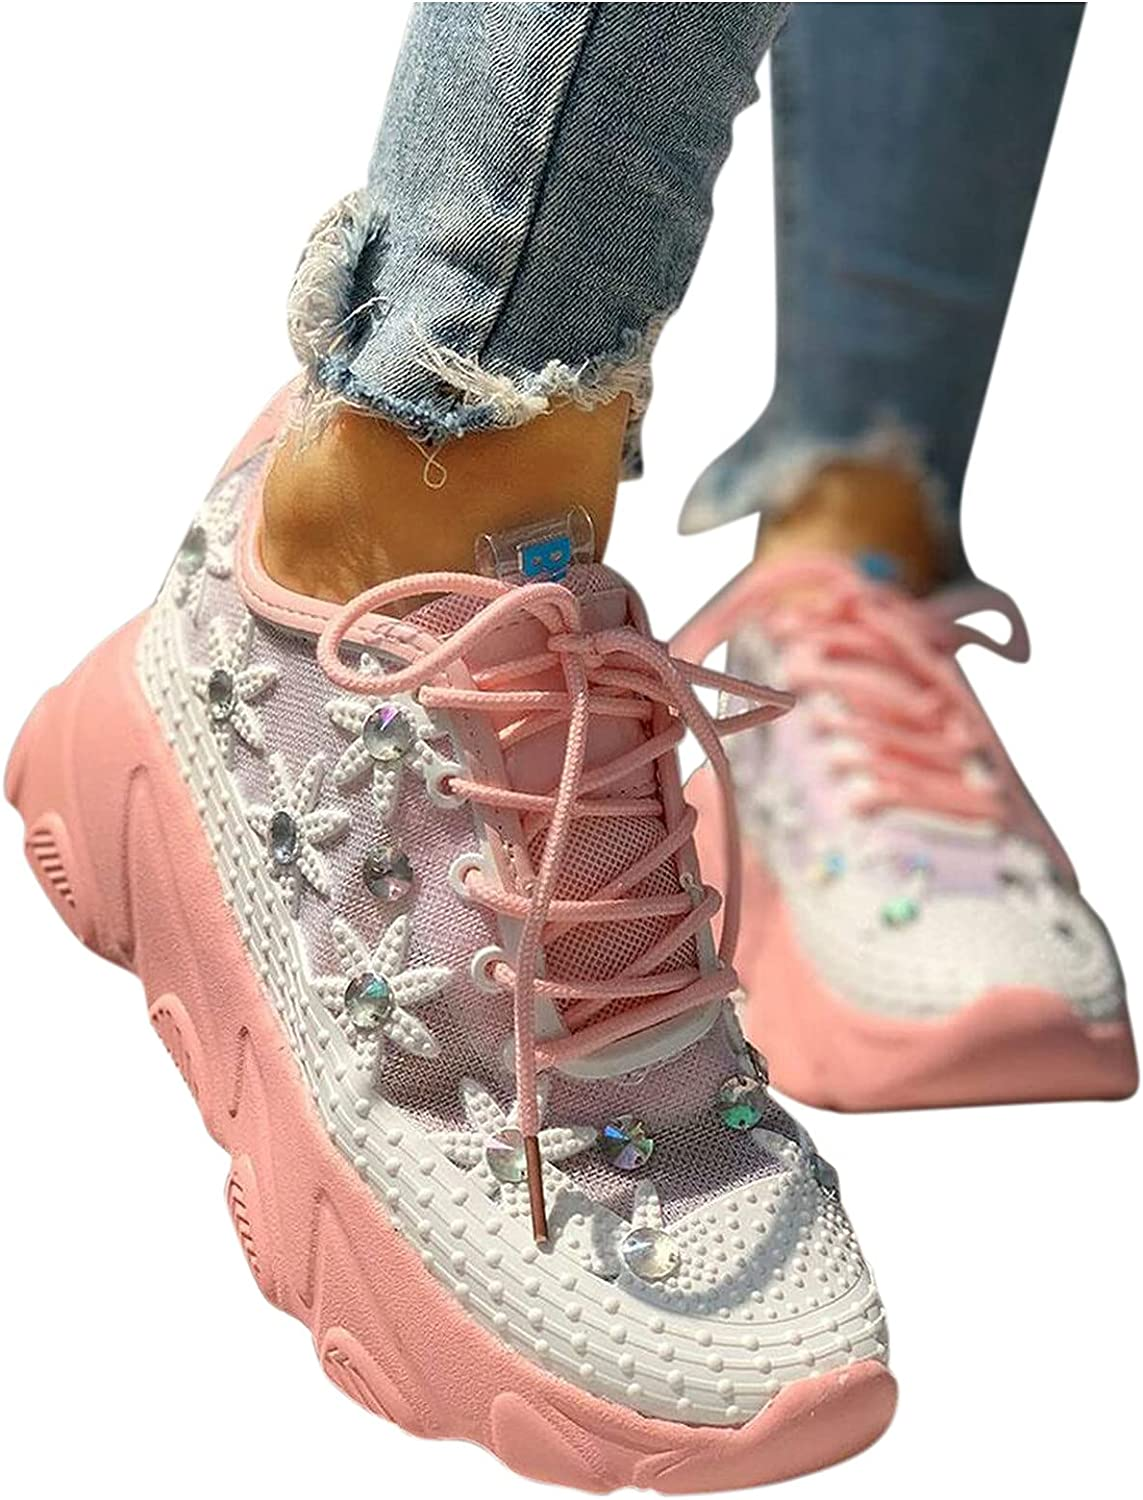 Womens Sneakers Wedge Lace-Up Mesh Hollow Breathable Shoes Fasion Ladies Pink Rhinestone New No-Slip Walking Slides